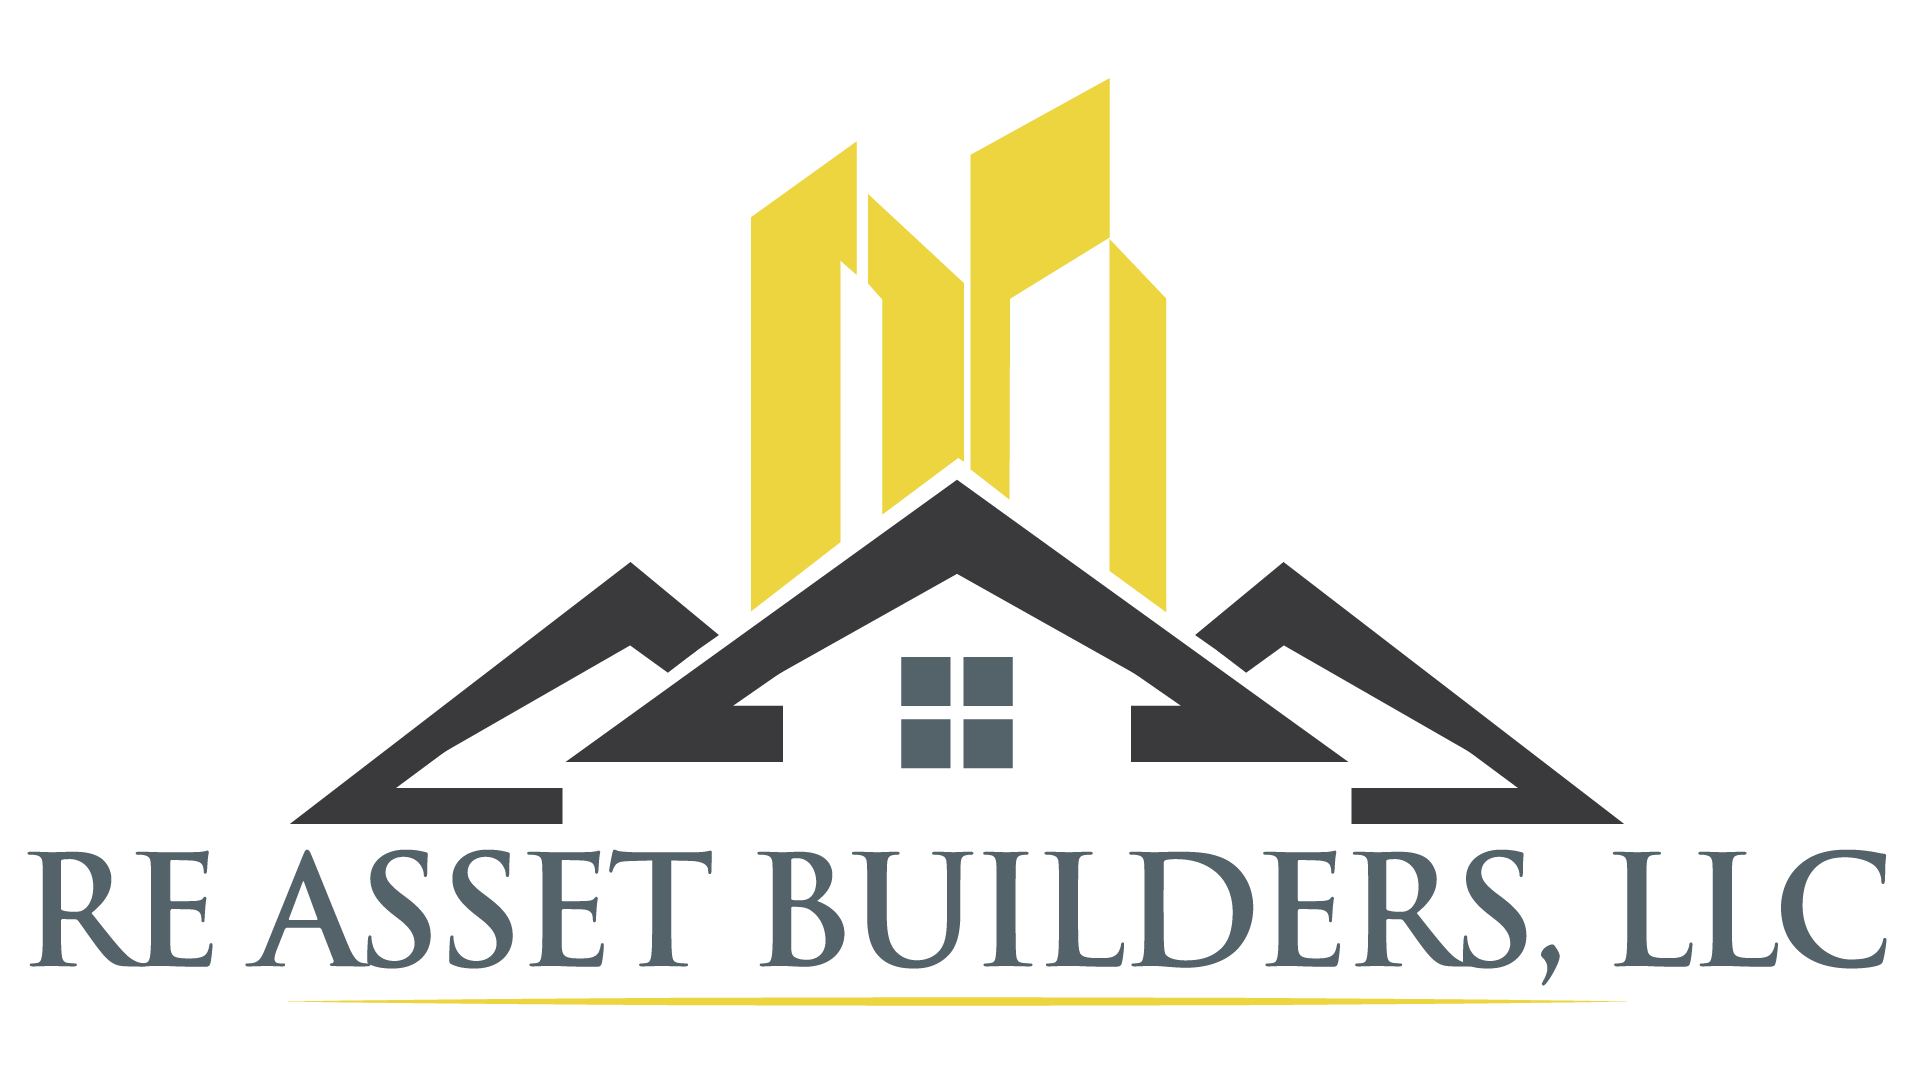 RE Asset Builders, LLC